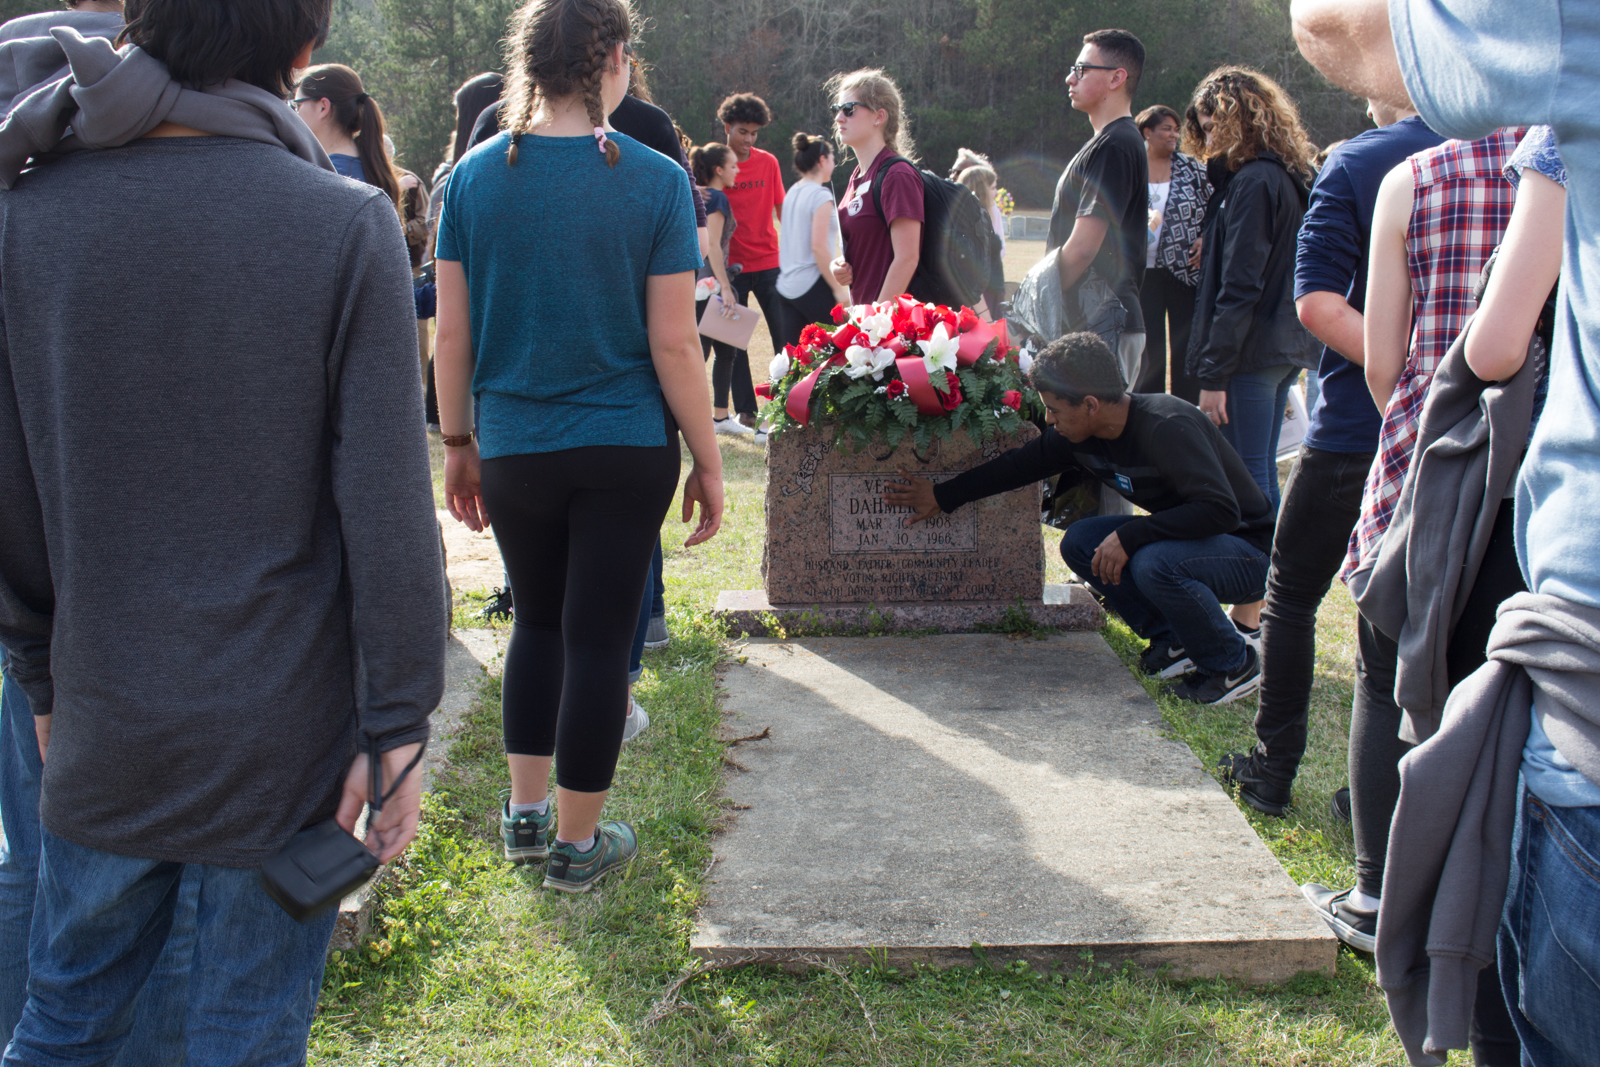 Students visit the grave of Vernon Dahmer, Sr.